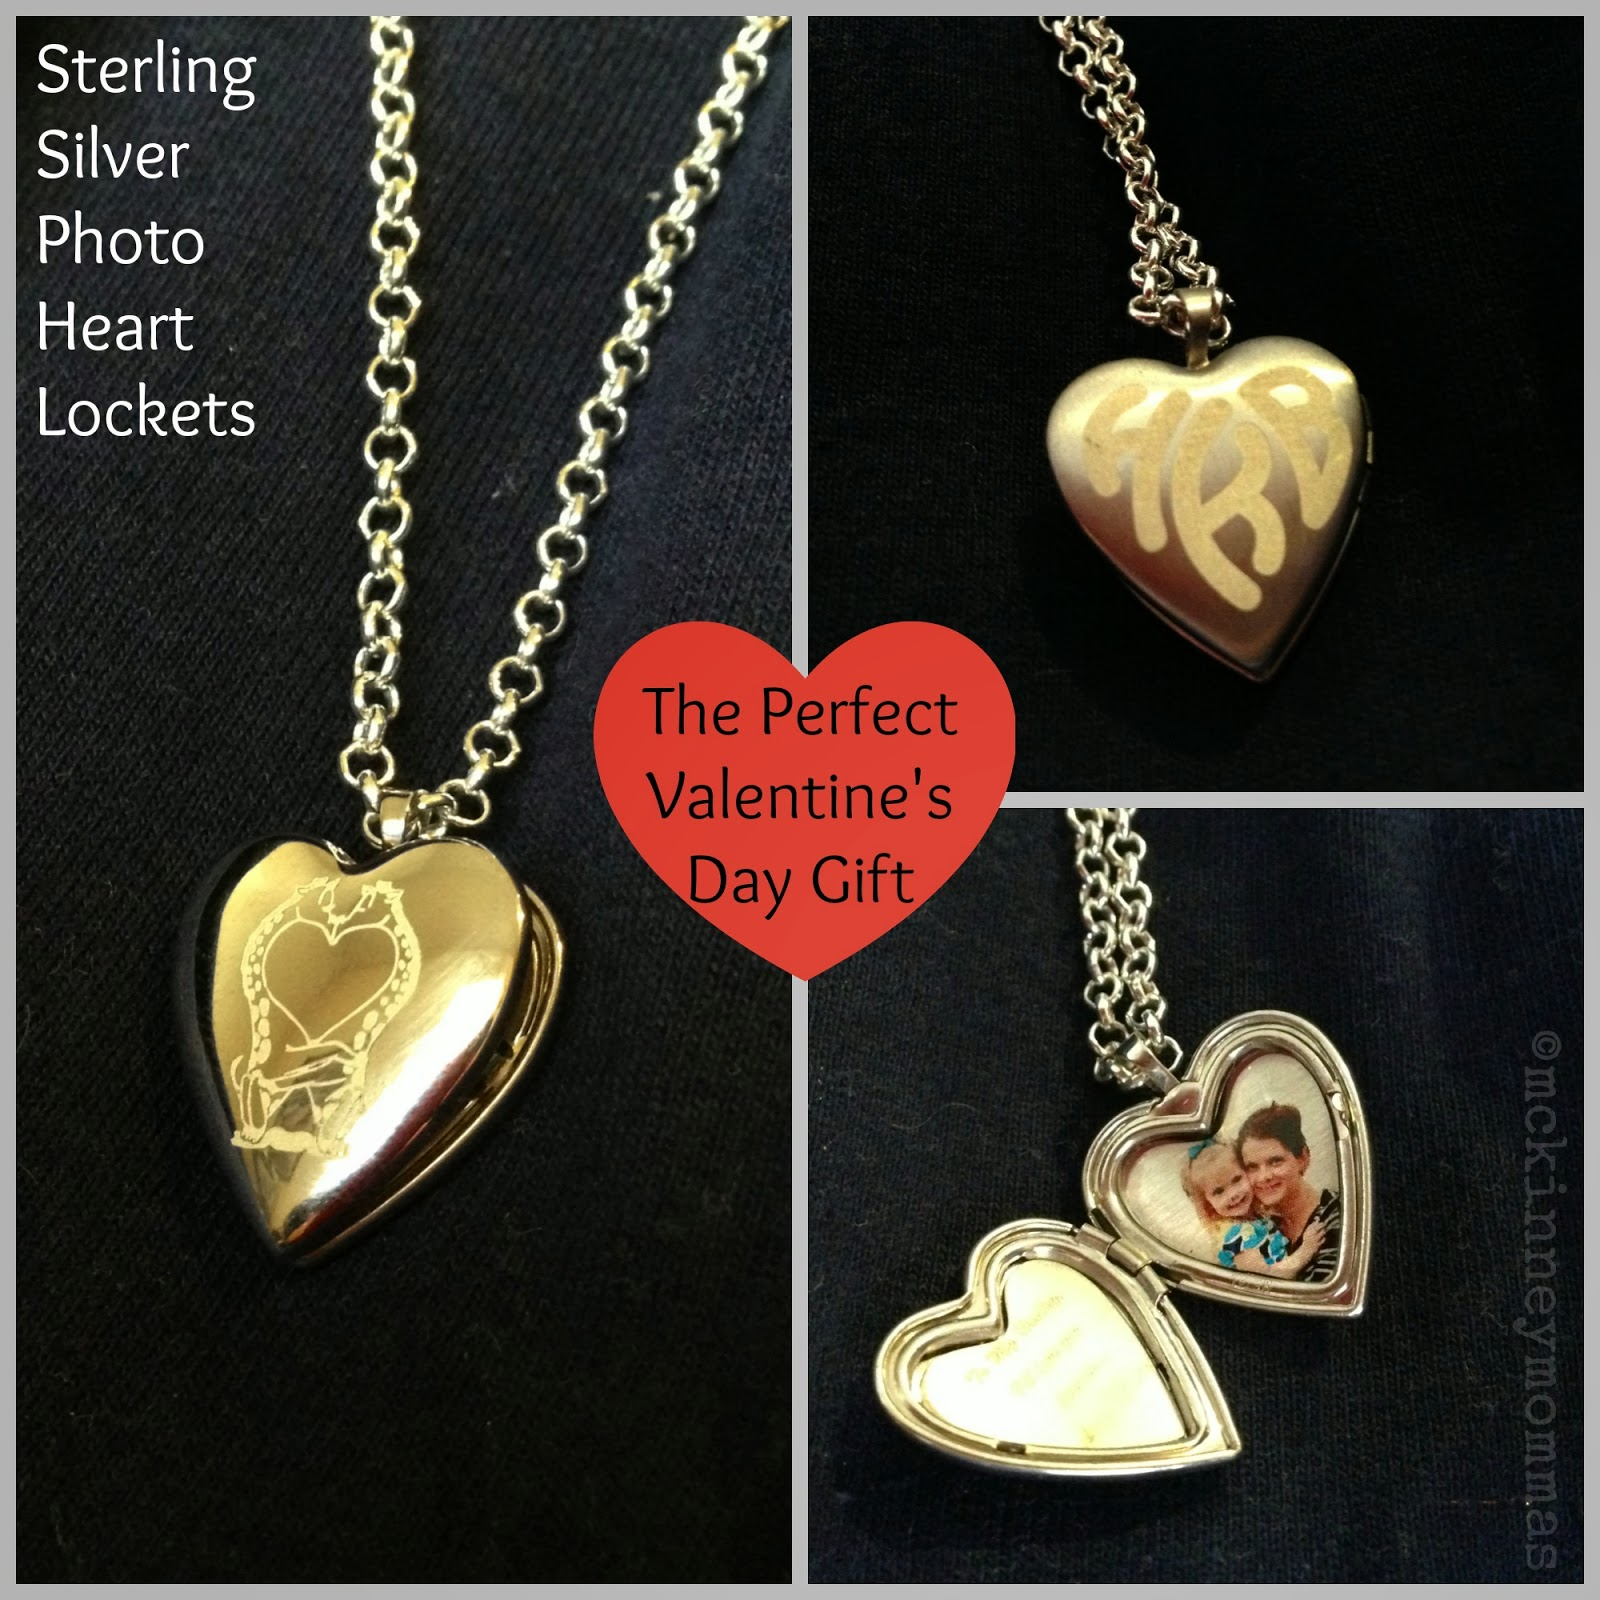 PicturesOnGold.com customized locket